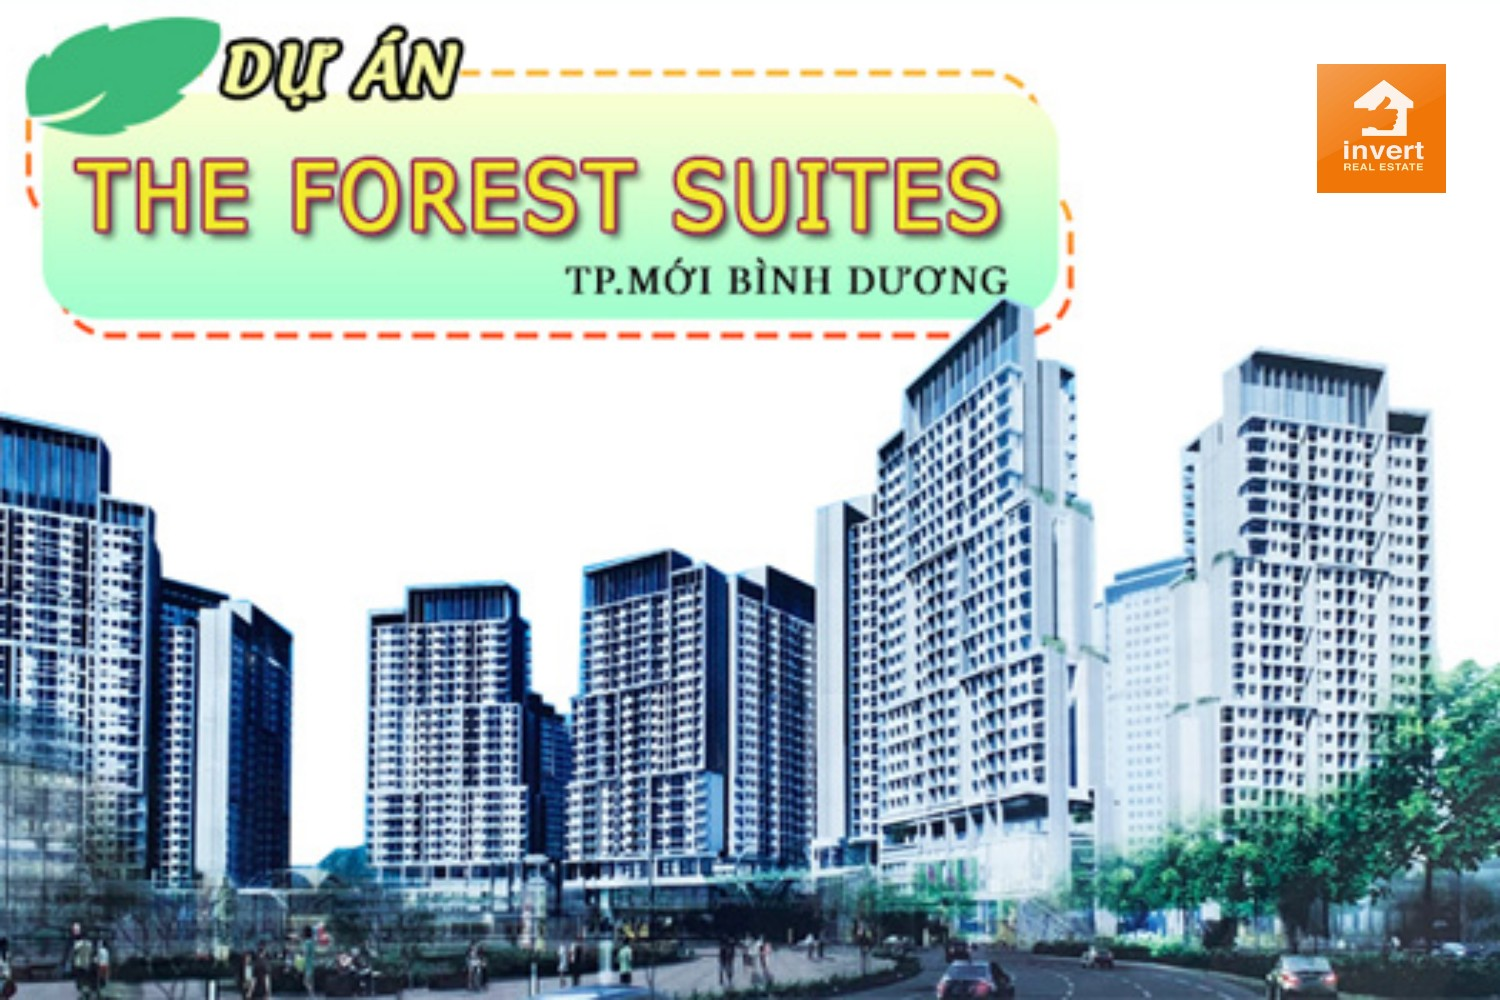 The Forest Suites